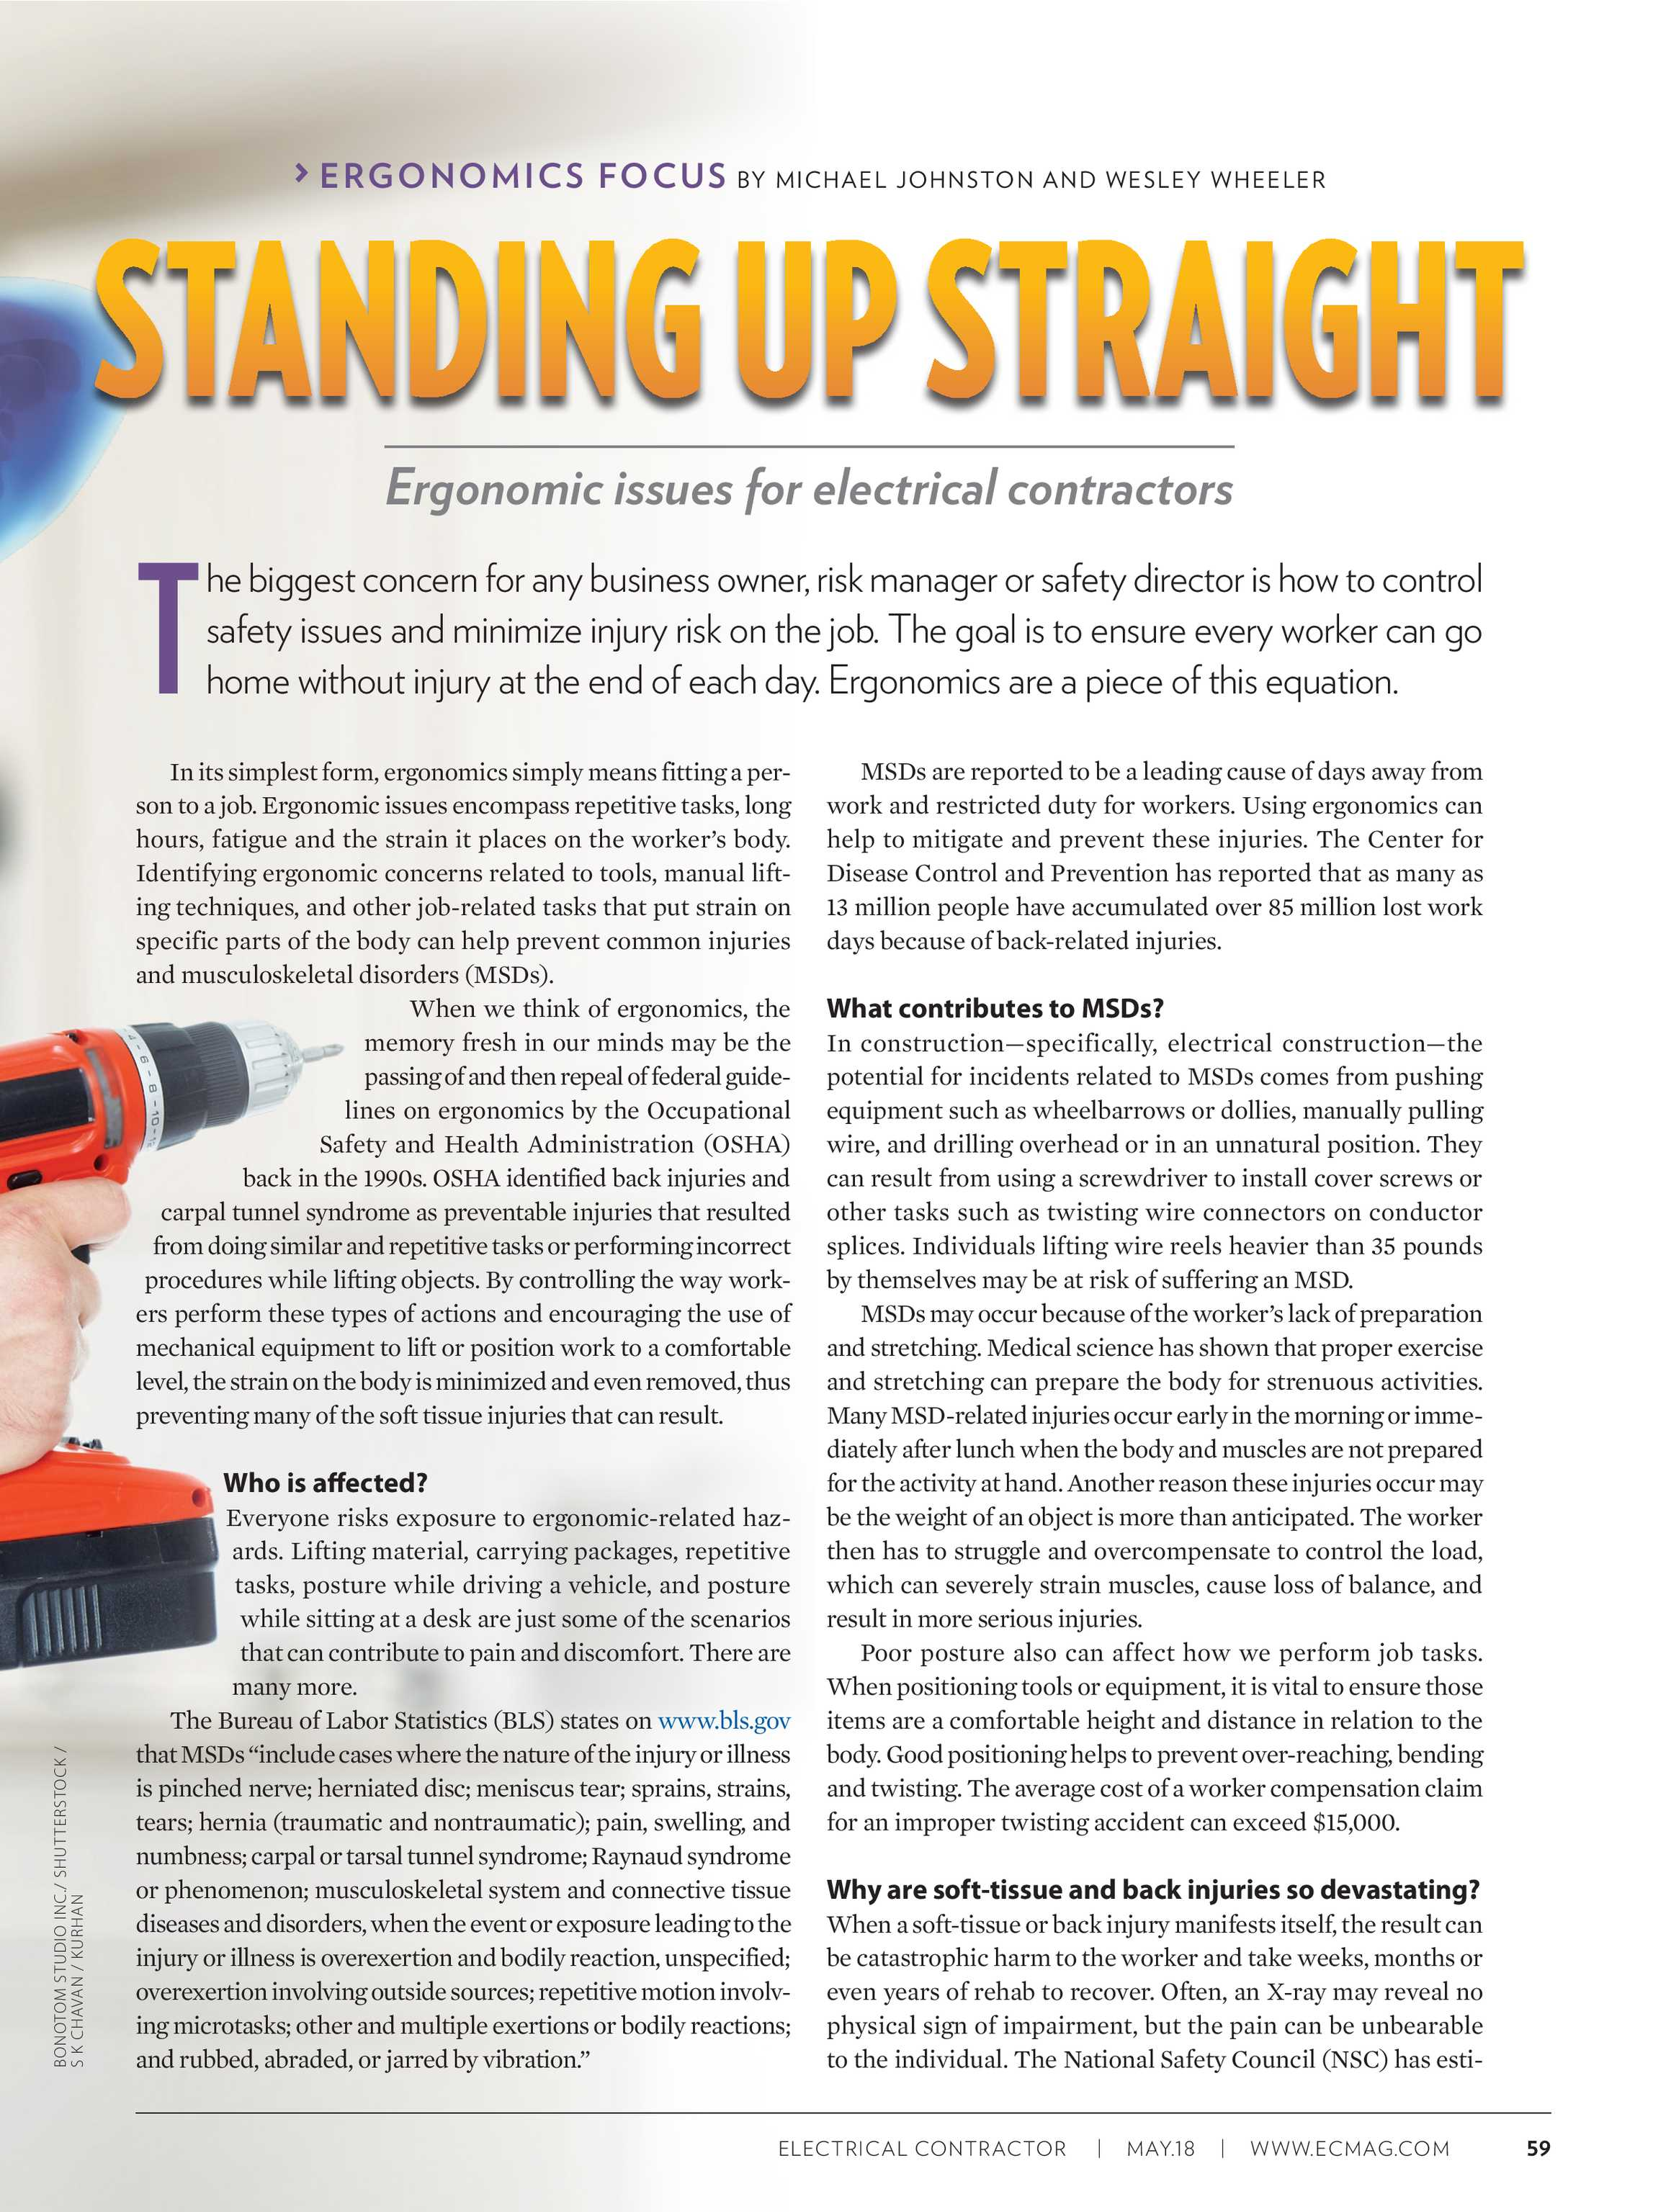 Electrical Contractor - July 2018 - page 60